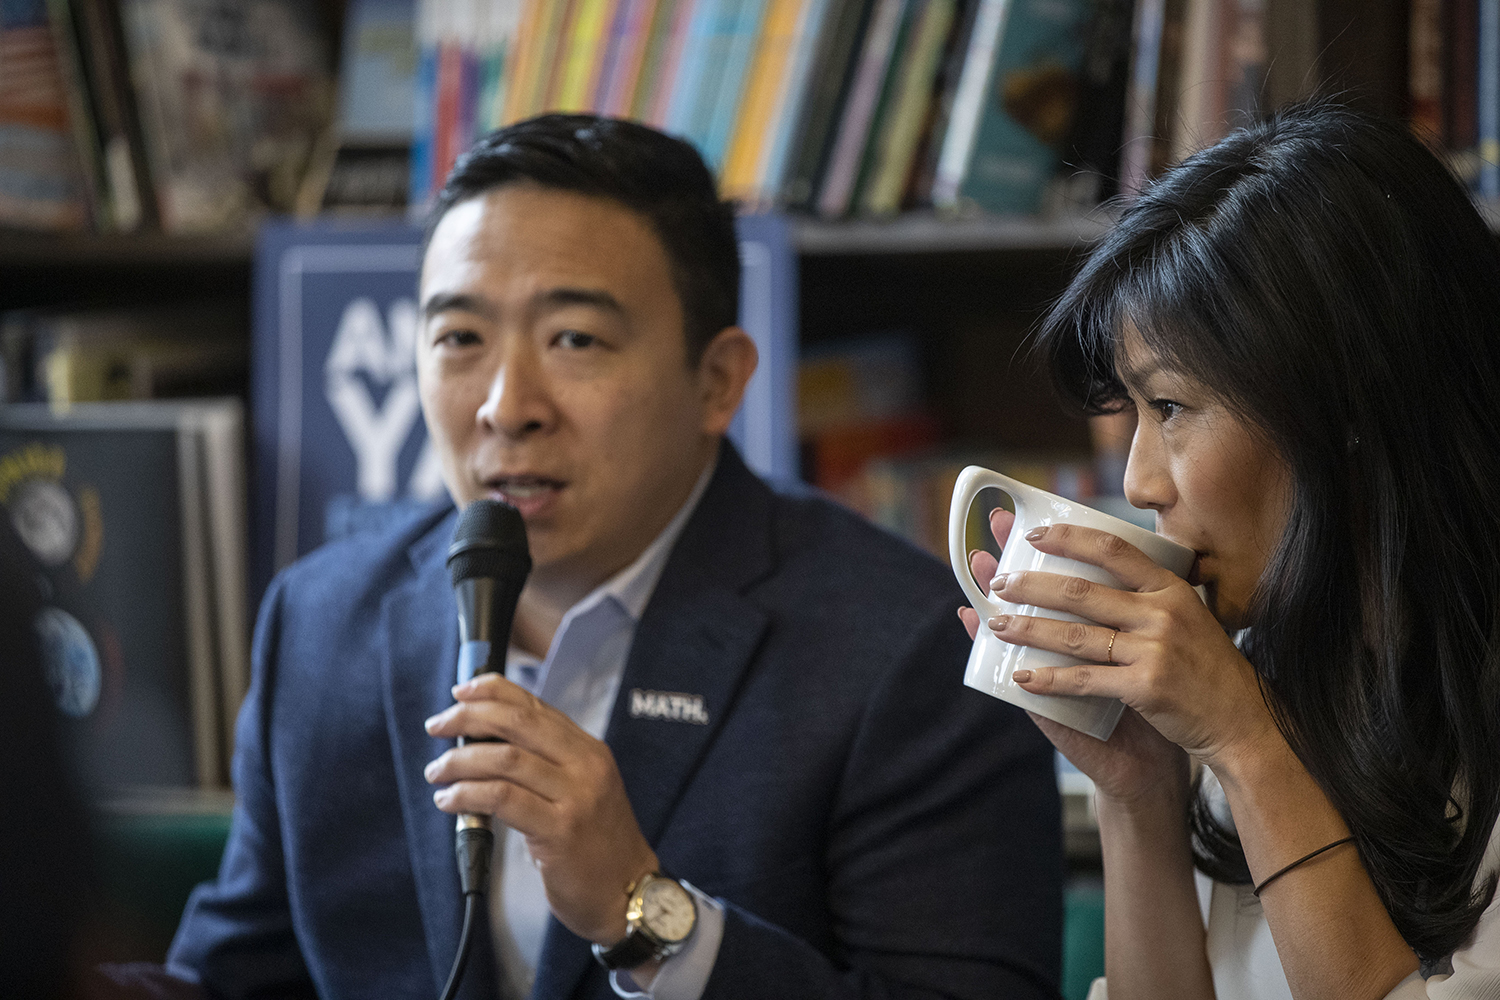 Democratic candidate Andrew Yang speaks as his wife Evelyn Yang takes a drink during a roundtable on the topic of family and autism at Sidekick cafe in University Heights on Saturday, Dec. 14, 2019. The Yang's shared their experience with their son Christopher, who is on the autism spectrum.